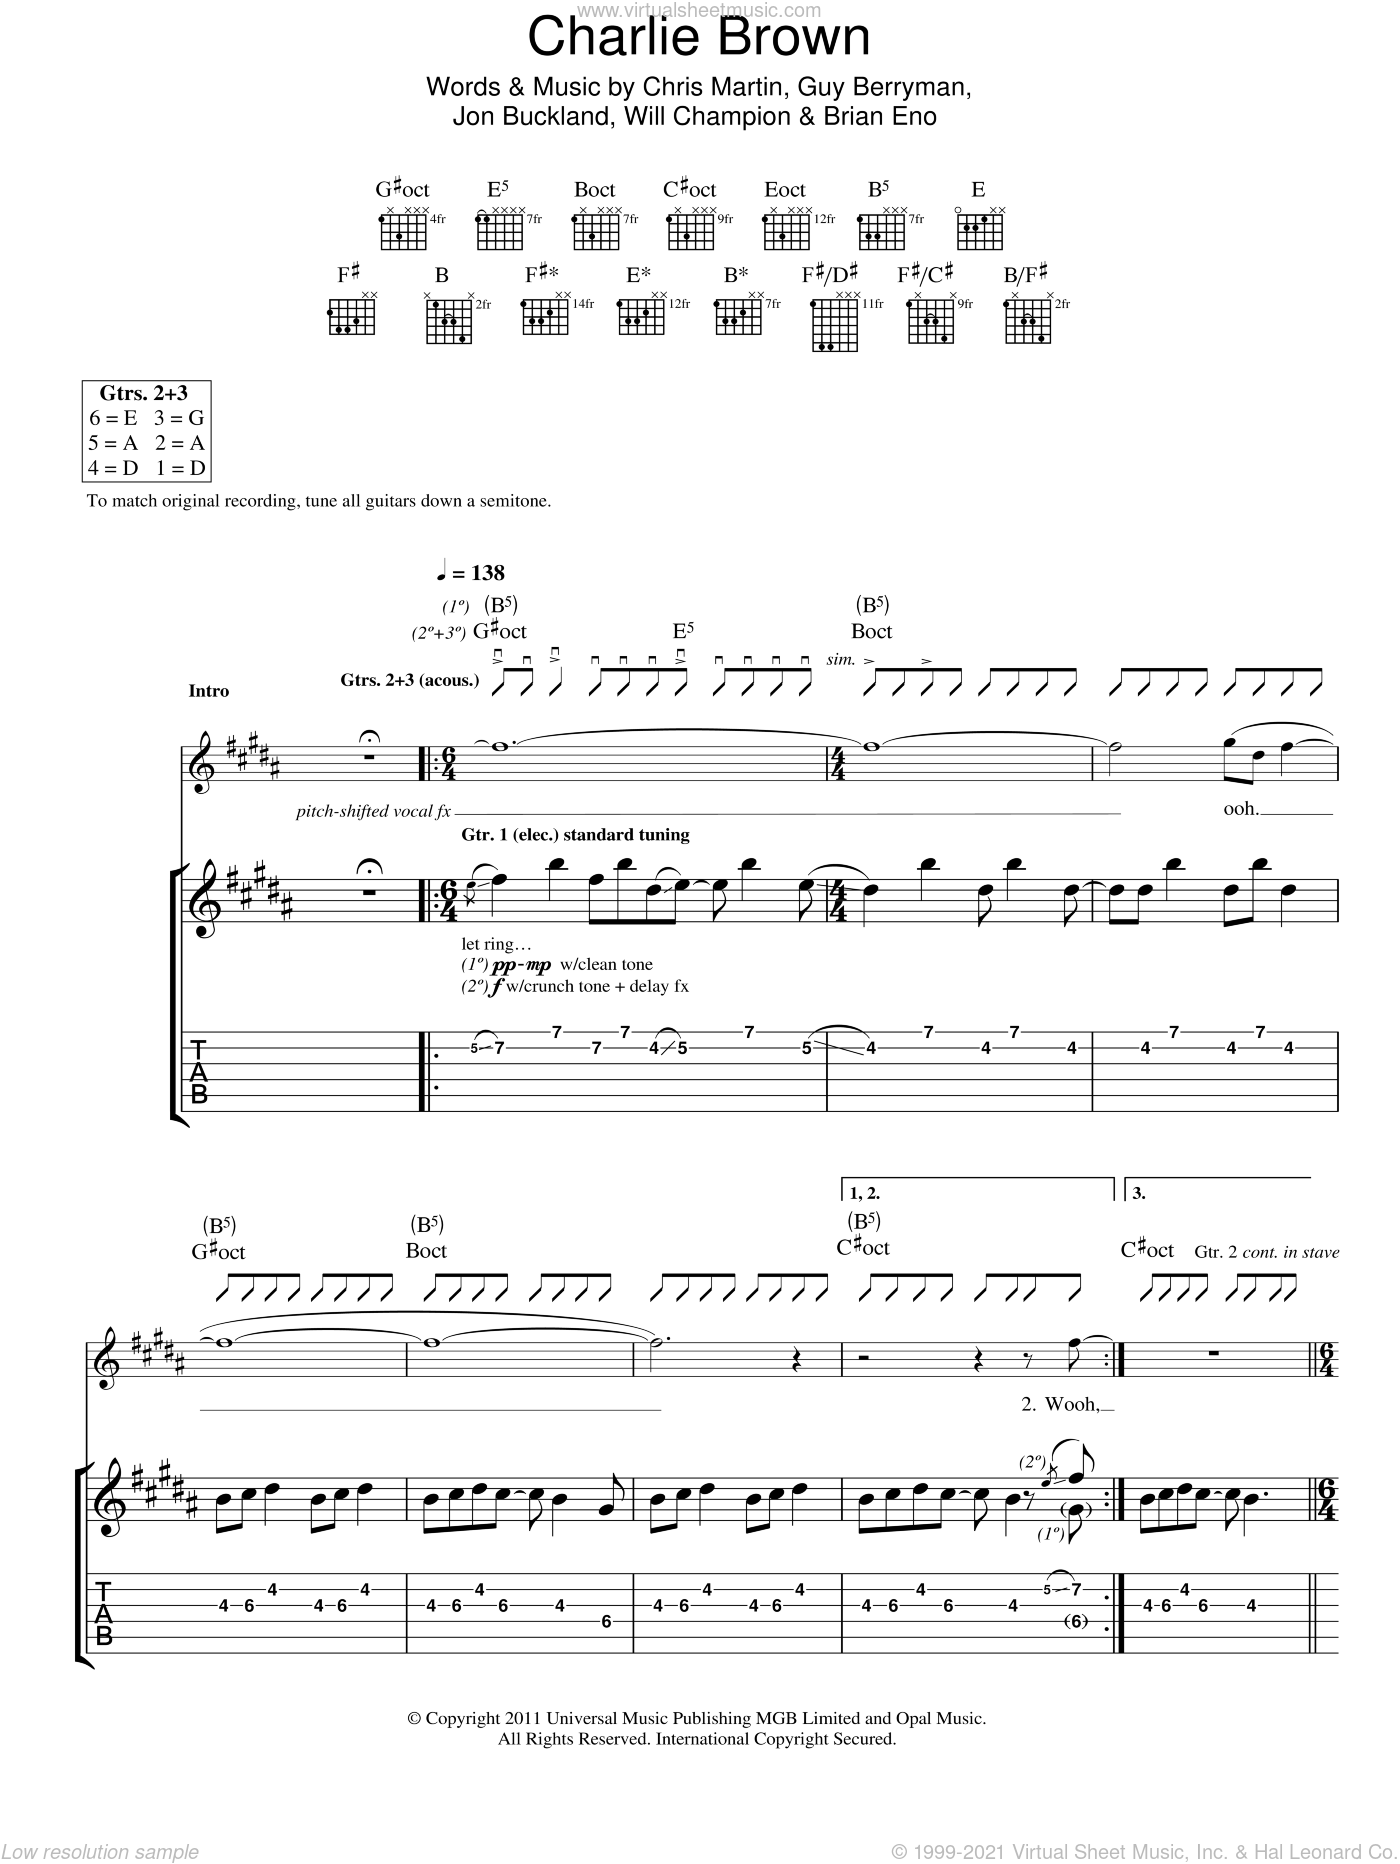 Charlie Brown sheet music for guitar (tablature) by Will Champion